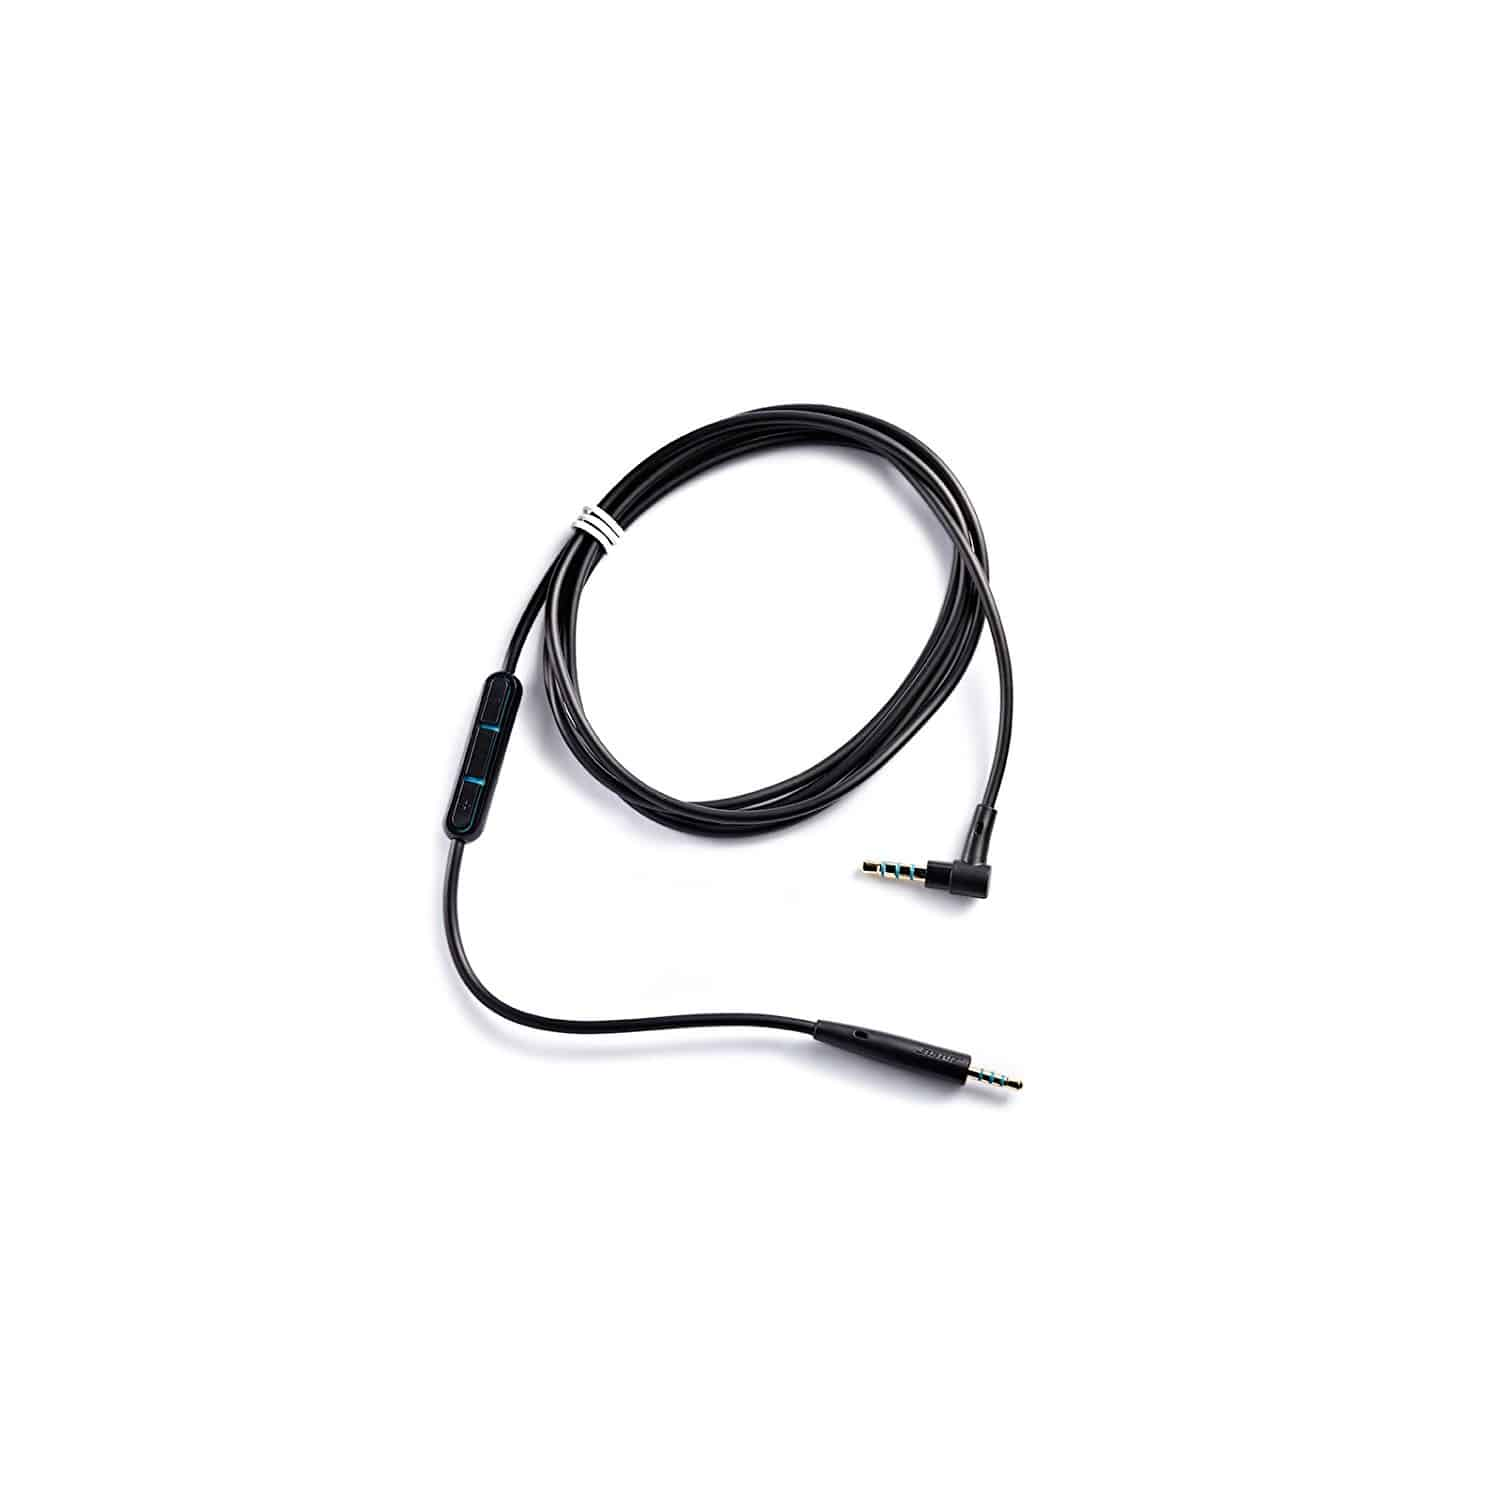 Bose QC25 Audio Cable